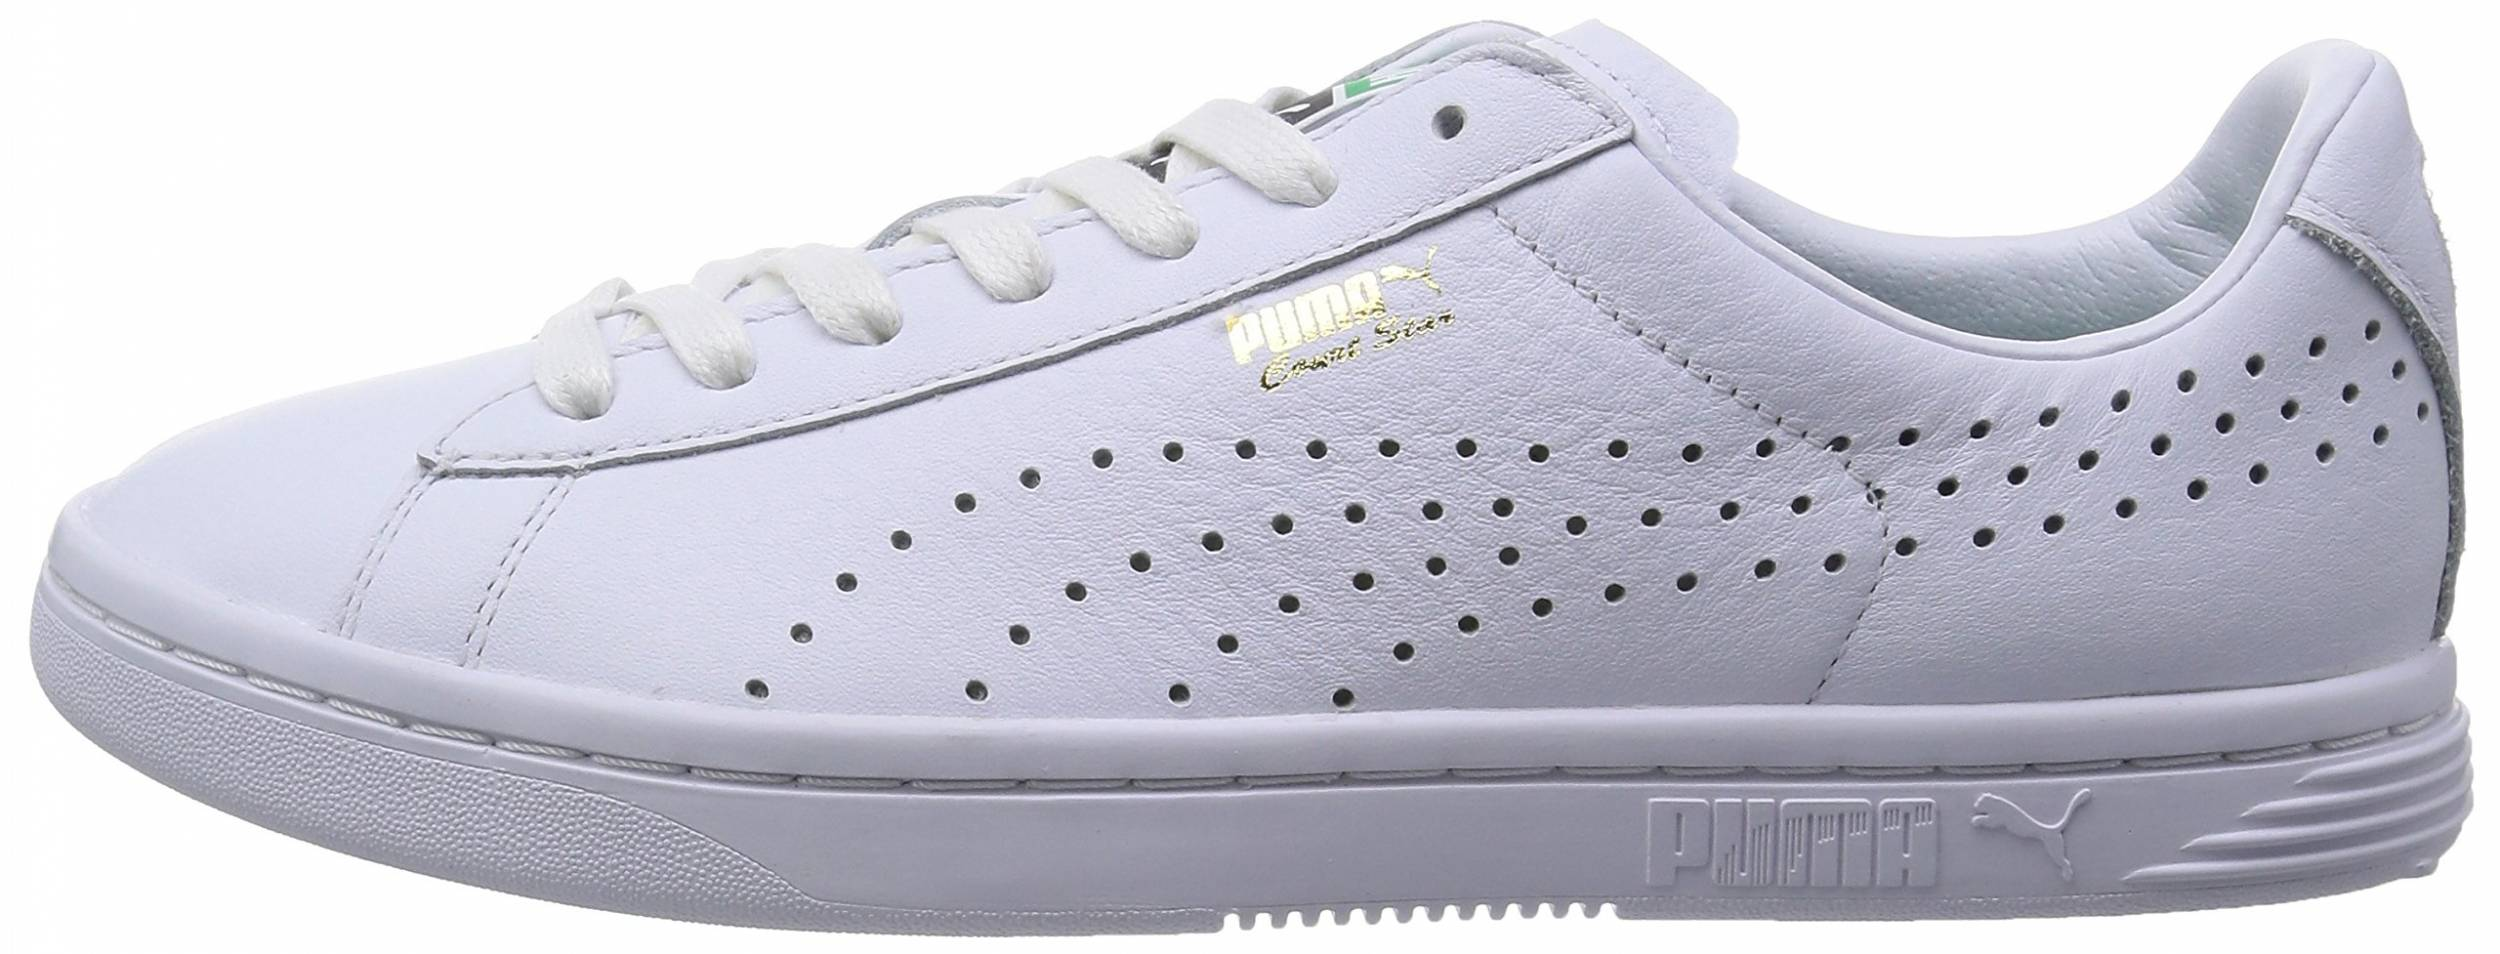 Only $35 + Review of Puma Court Star NM